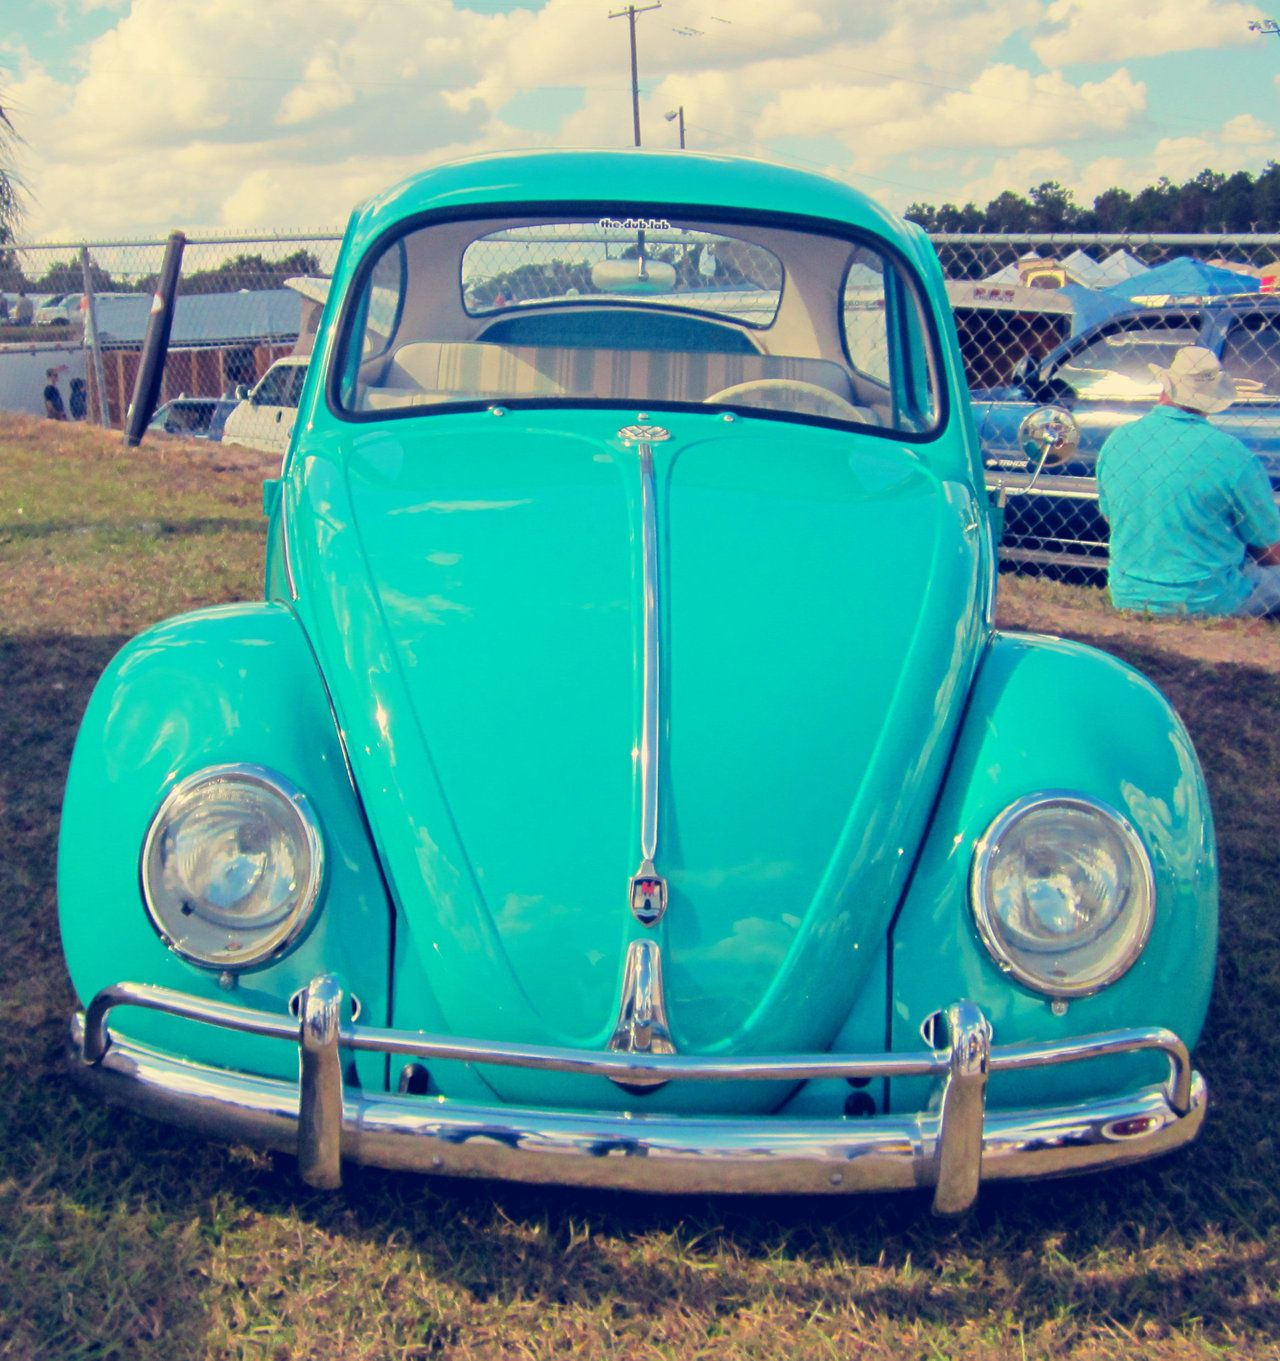 Turquoise Volkswagen Beetle Bug Cool And I Would Like This